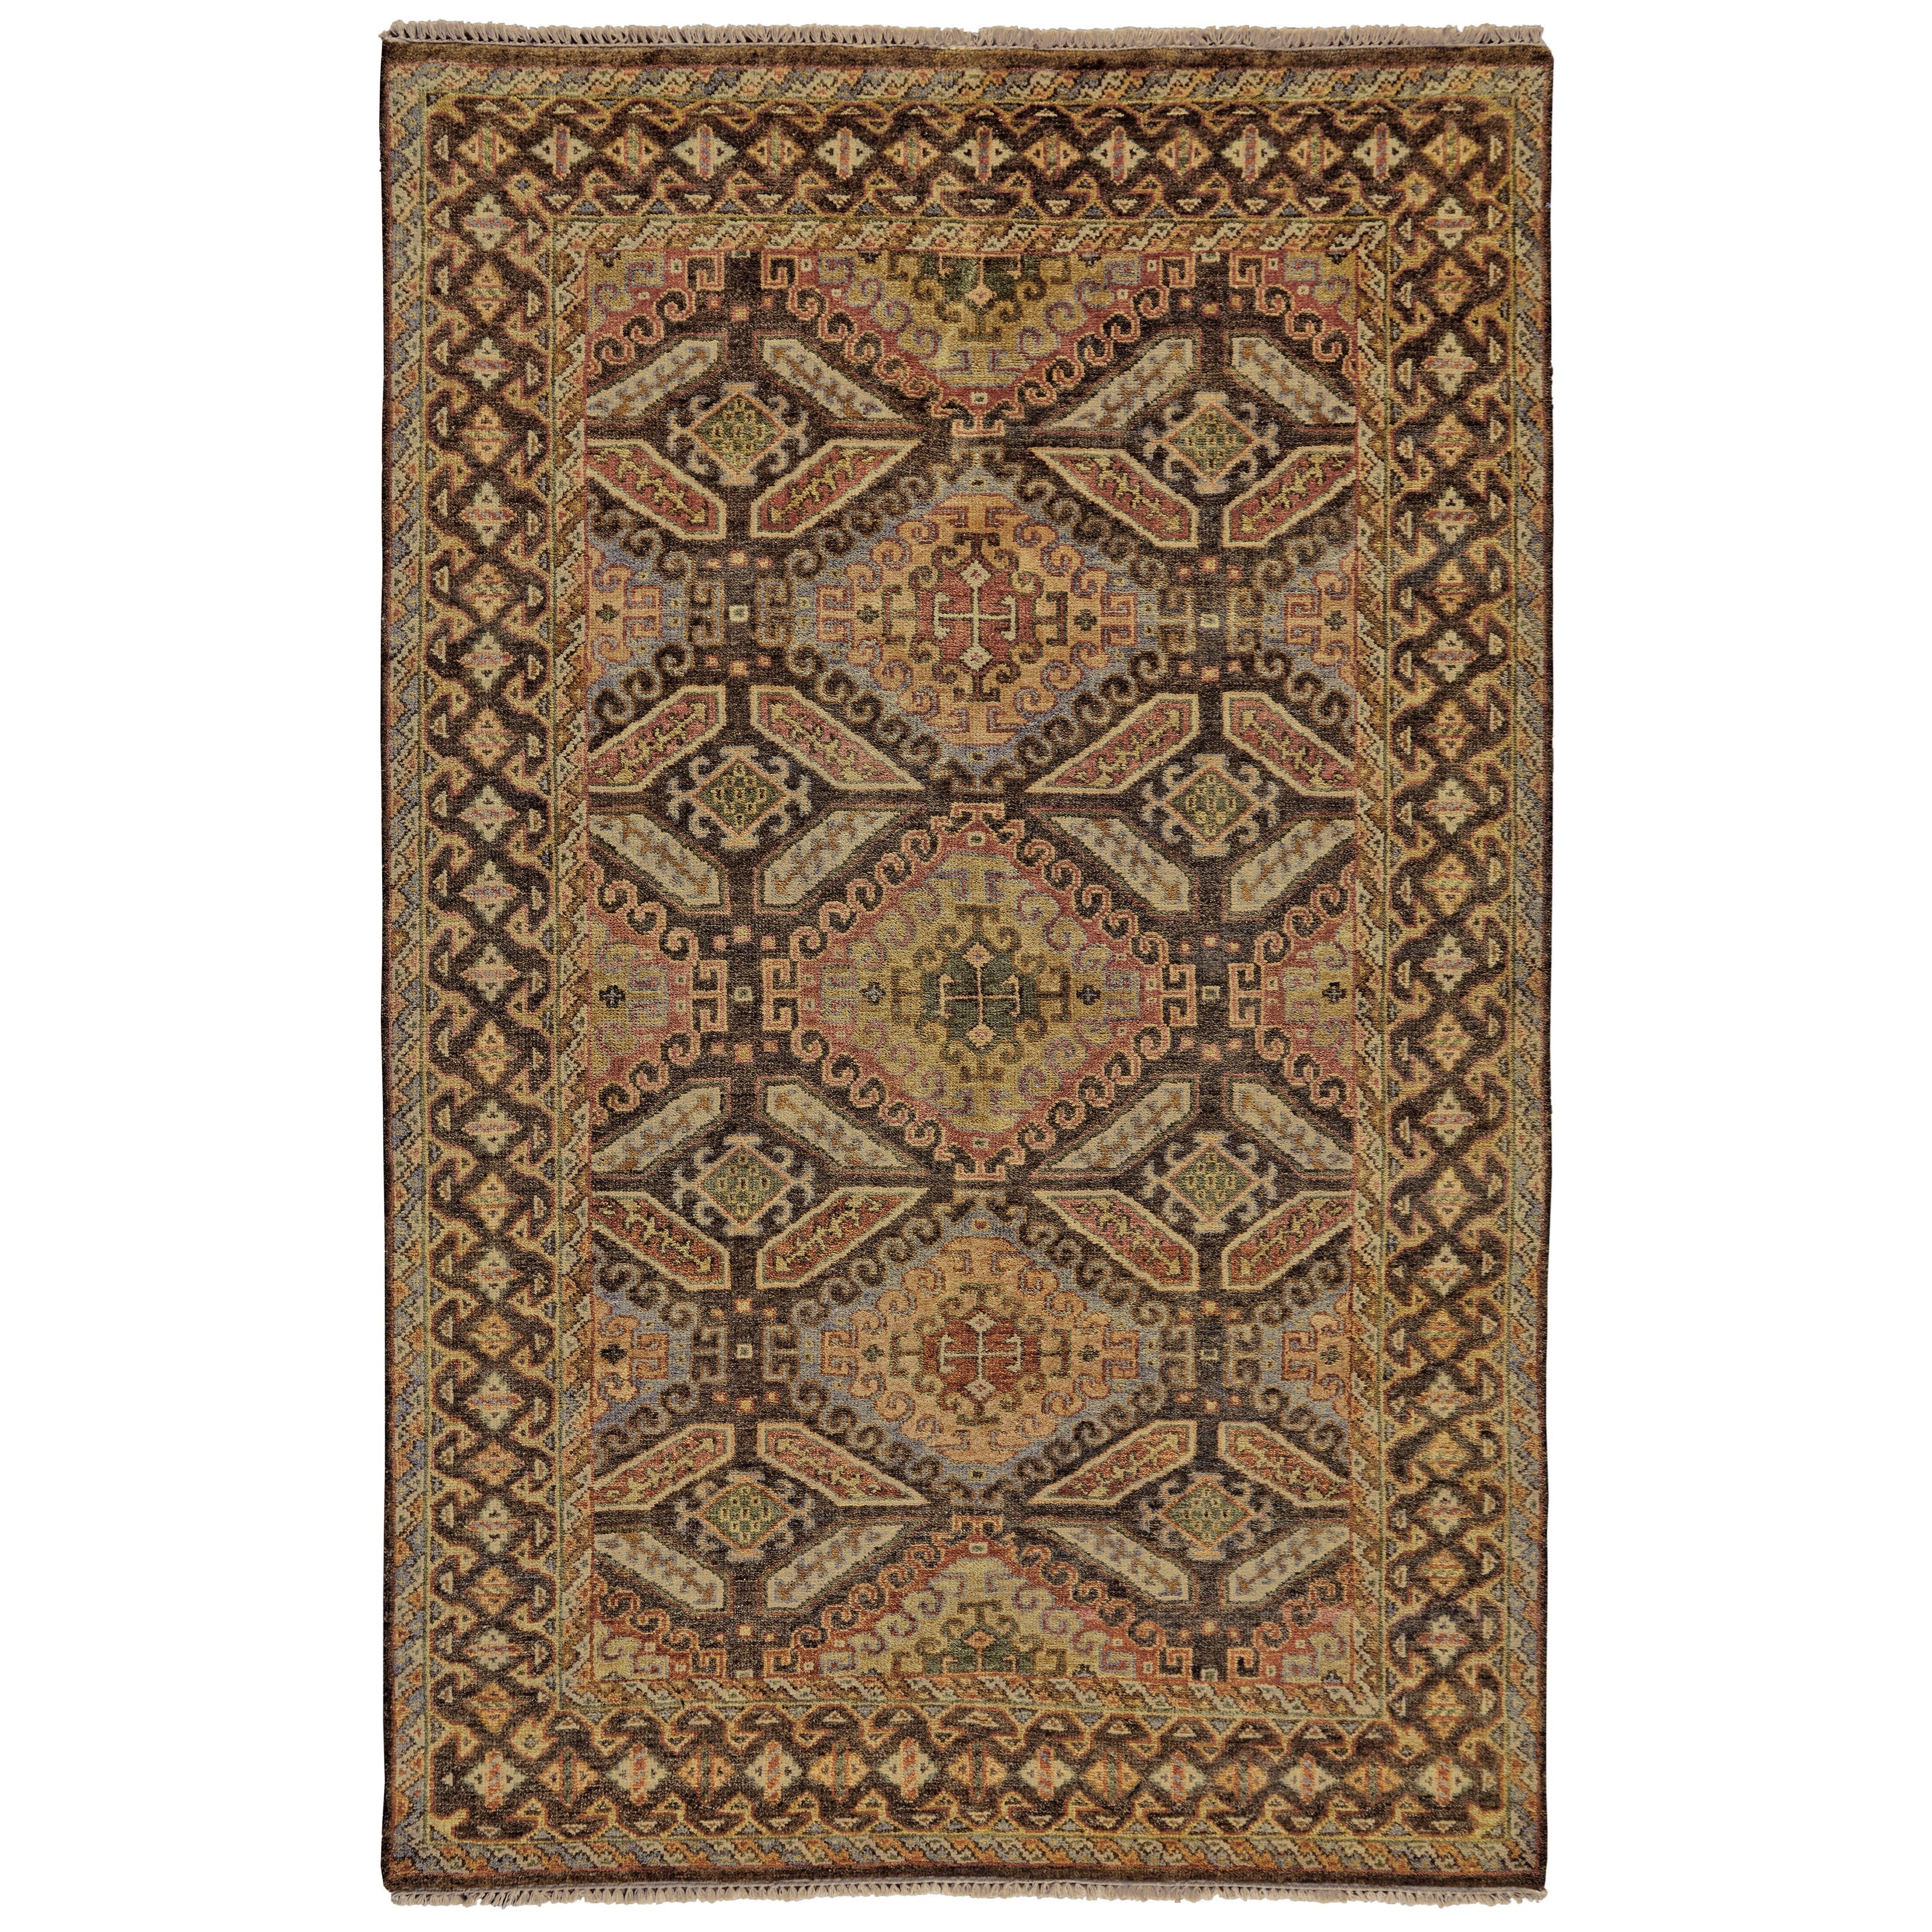 """Ashi Brown/Brown 7'-9"""" x 9'-9"""" Area Rug by Feizy Rugs at Sprintz Furniture"""